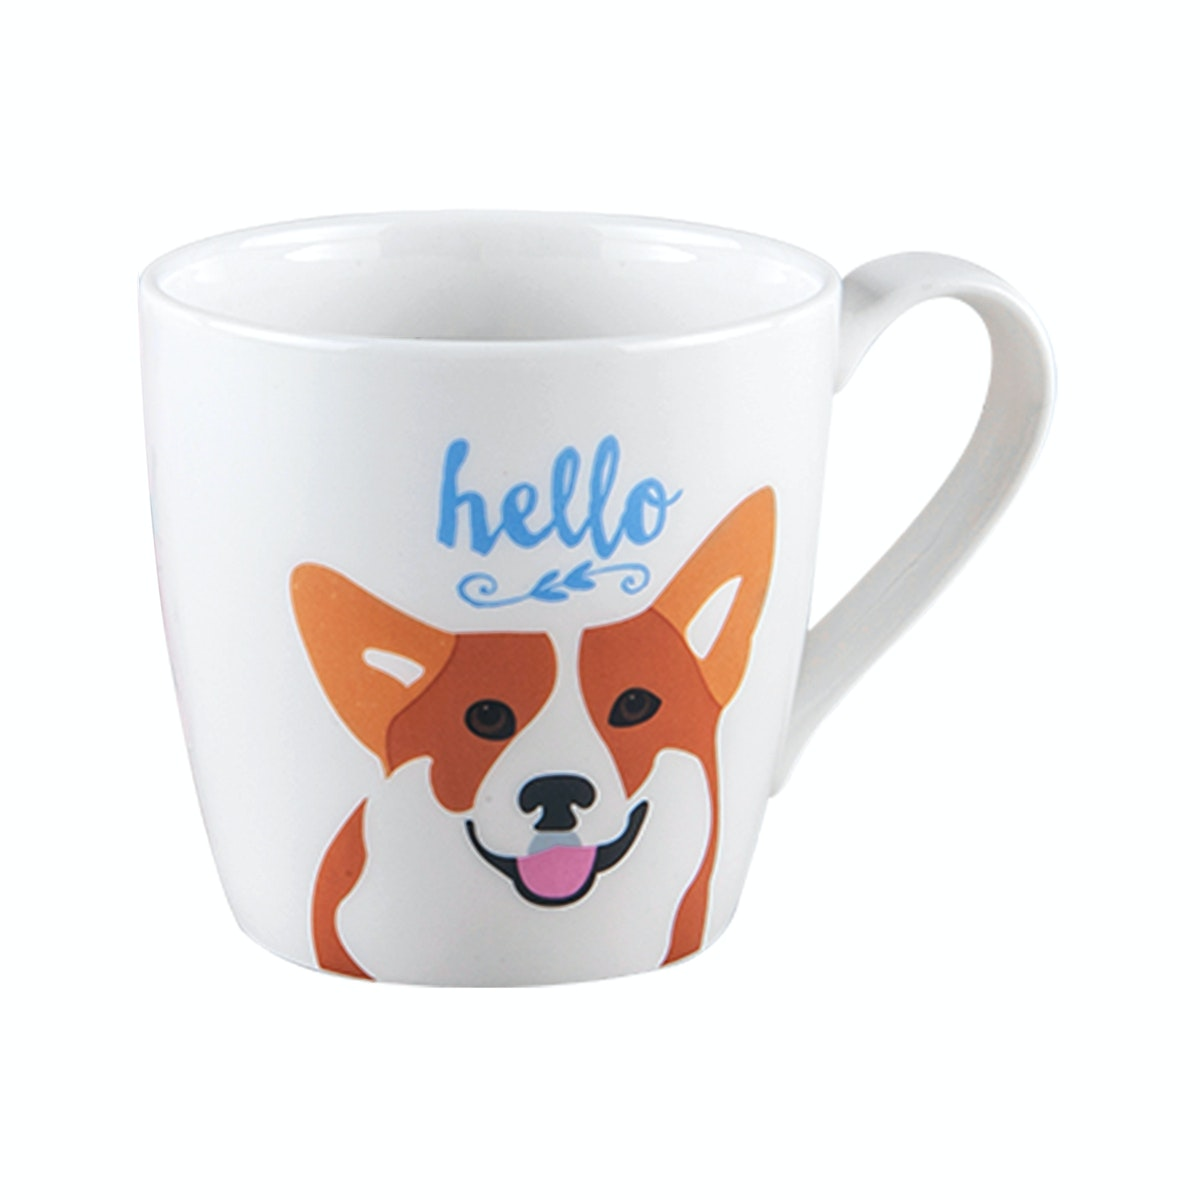 Saint James Premium Tableware Mug AT Hello Puppy